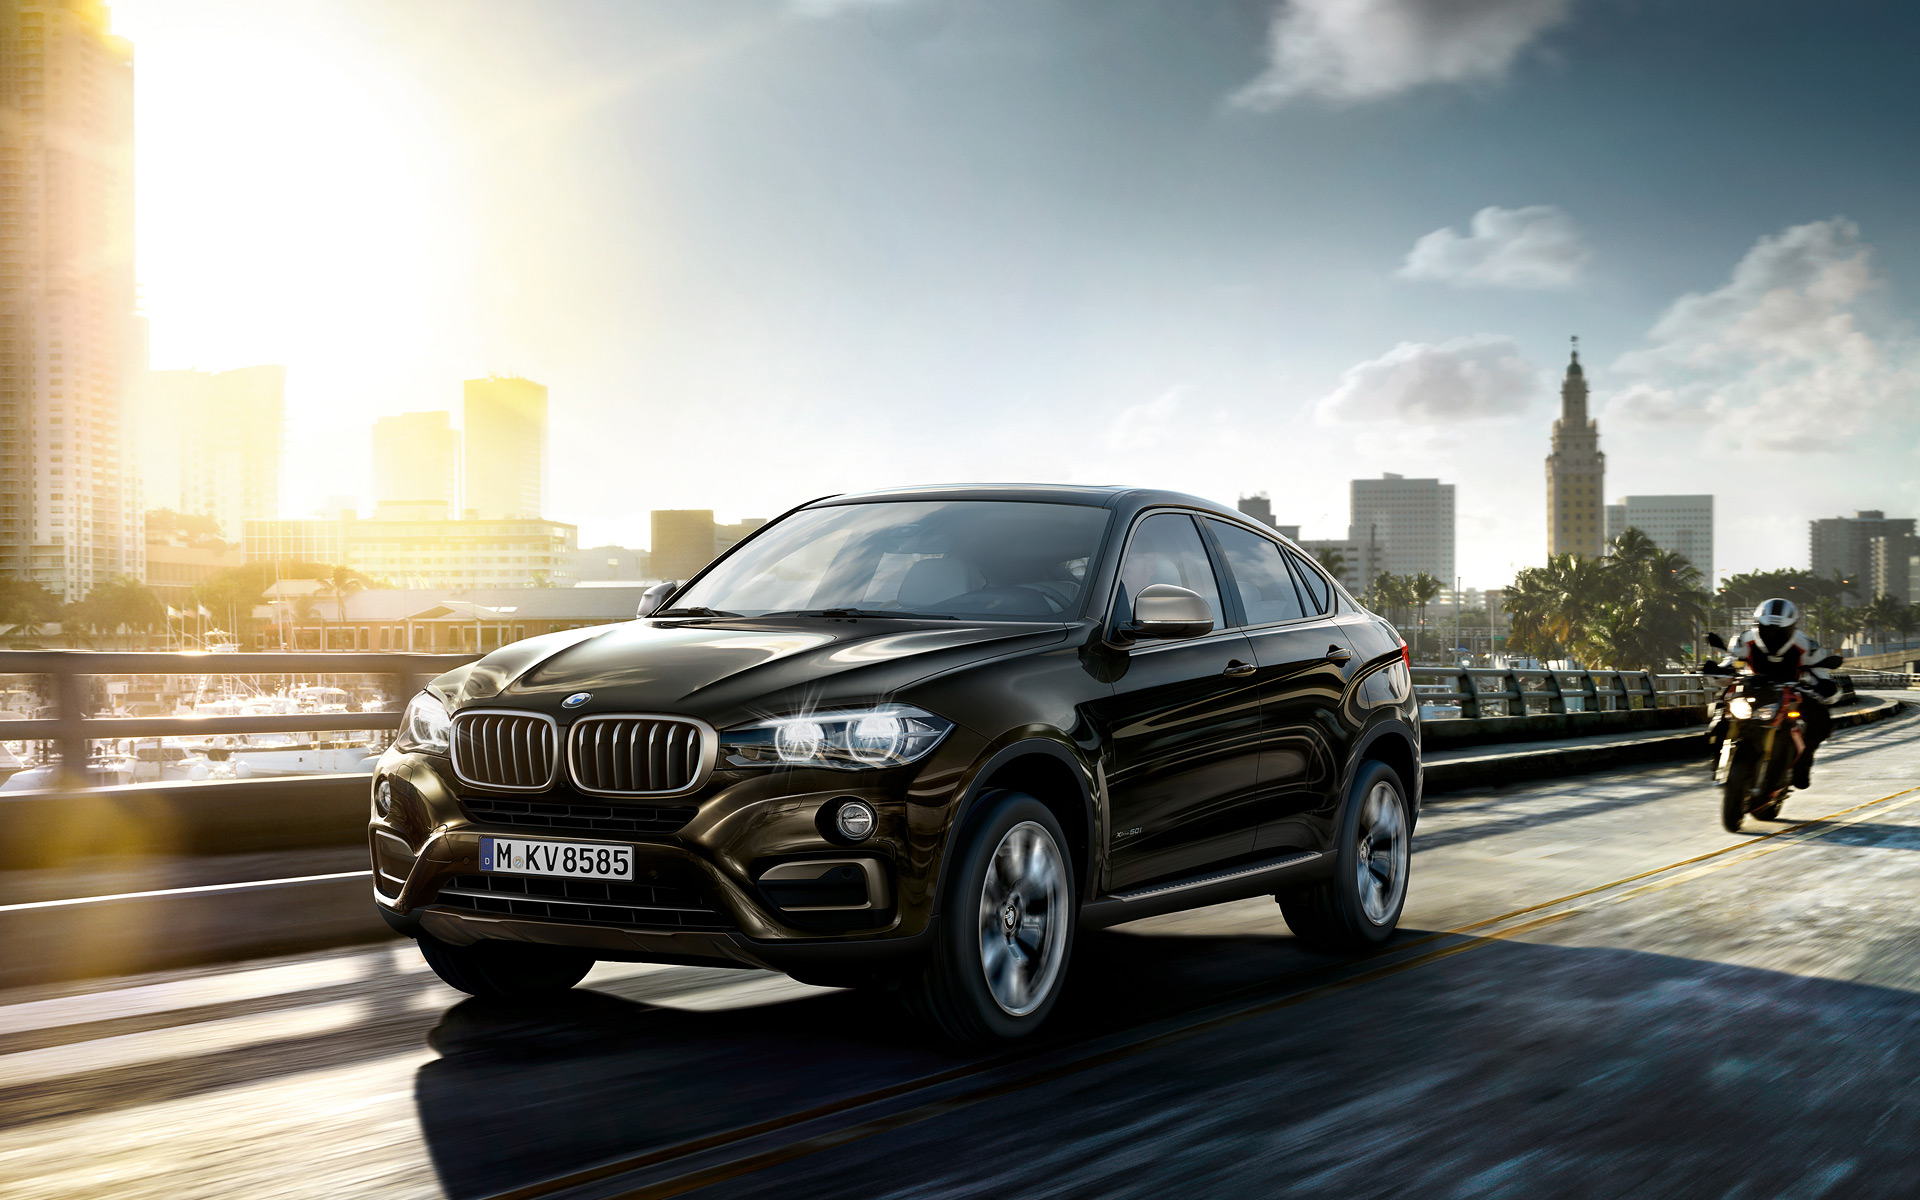 2016 Bmw X6 Wallpapers Autoevolution